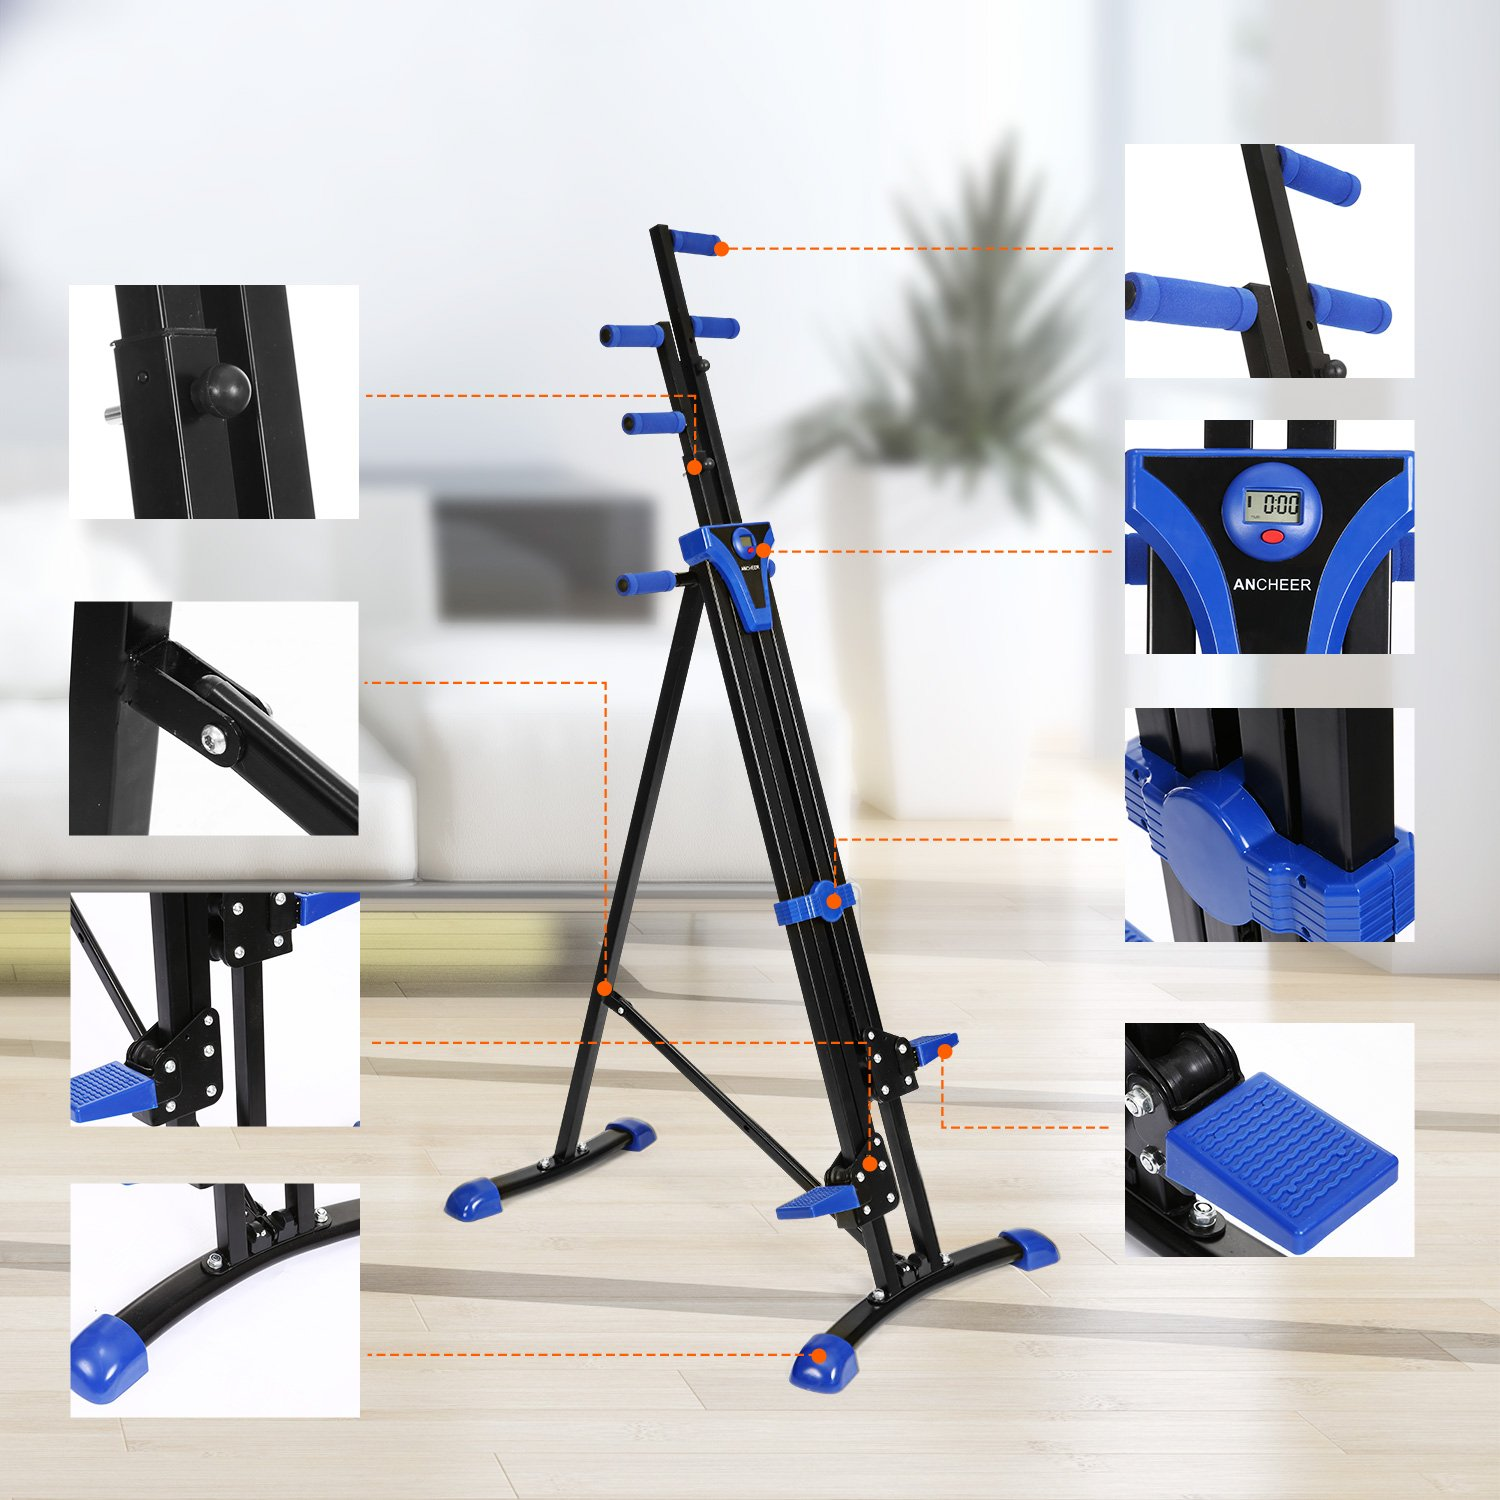 ANCHEER Vertical Climber Folding Exercise Climbing Machine, Exercise Equipment Climber for Home Gym, Exercise Bike for Home Body Trainer (Blue - only Climber) by ANCHEER (Image #7)